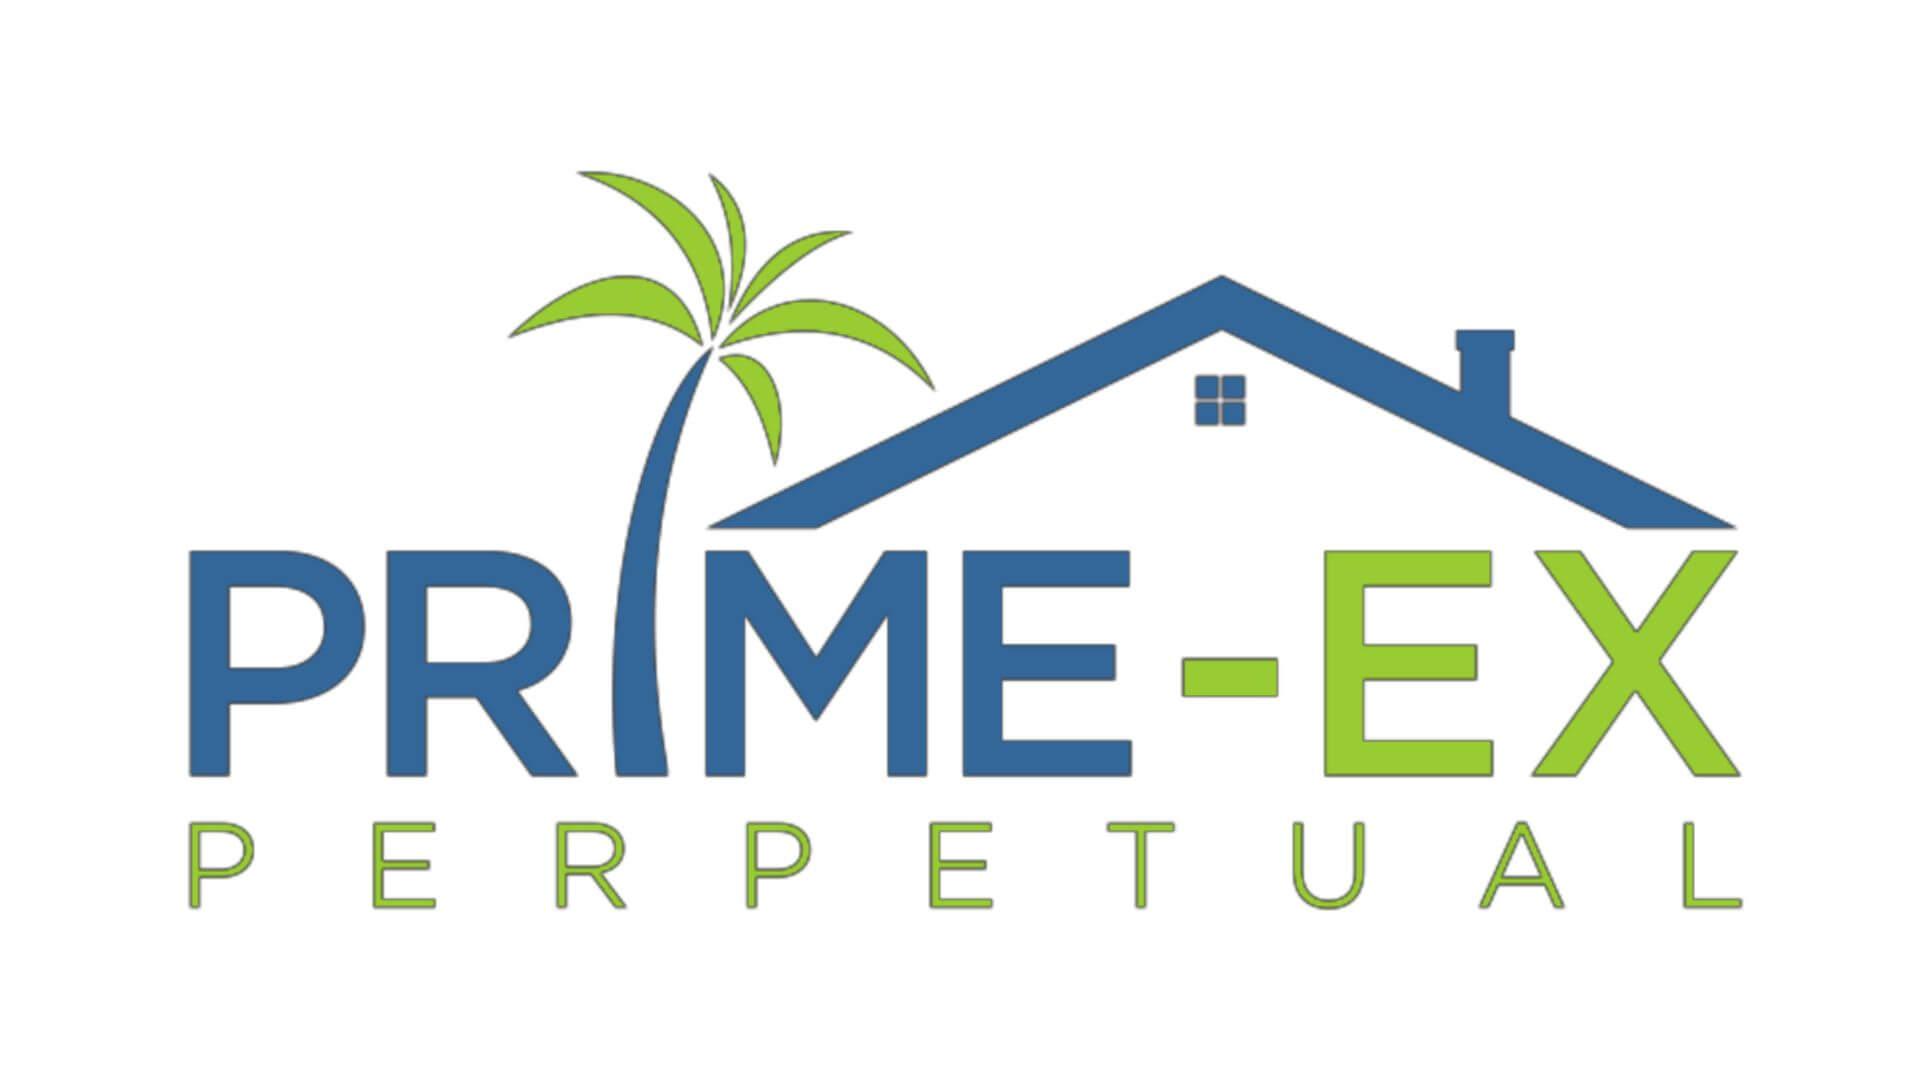 Prime-Ex Perpetual Wraps Up ICO Eclipsing 10,000,000 Tokens Sold, Ready to Build New Homes